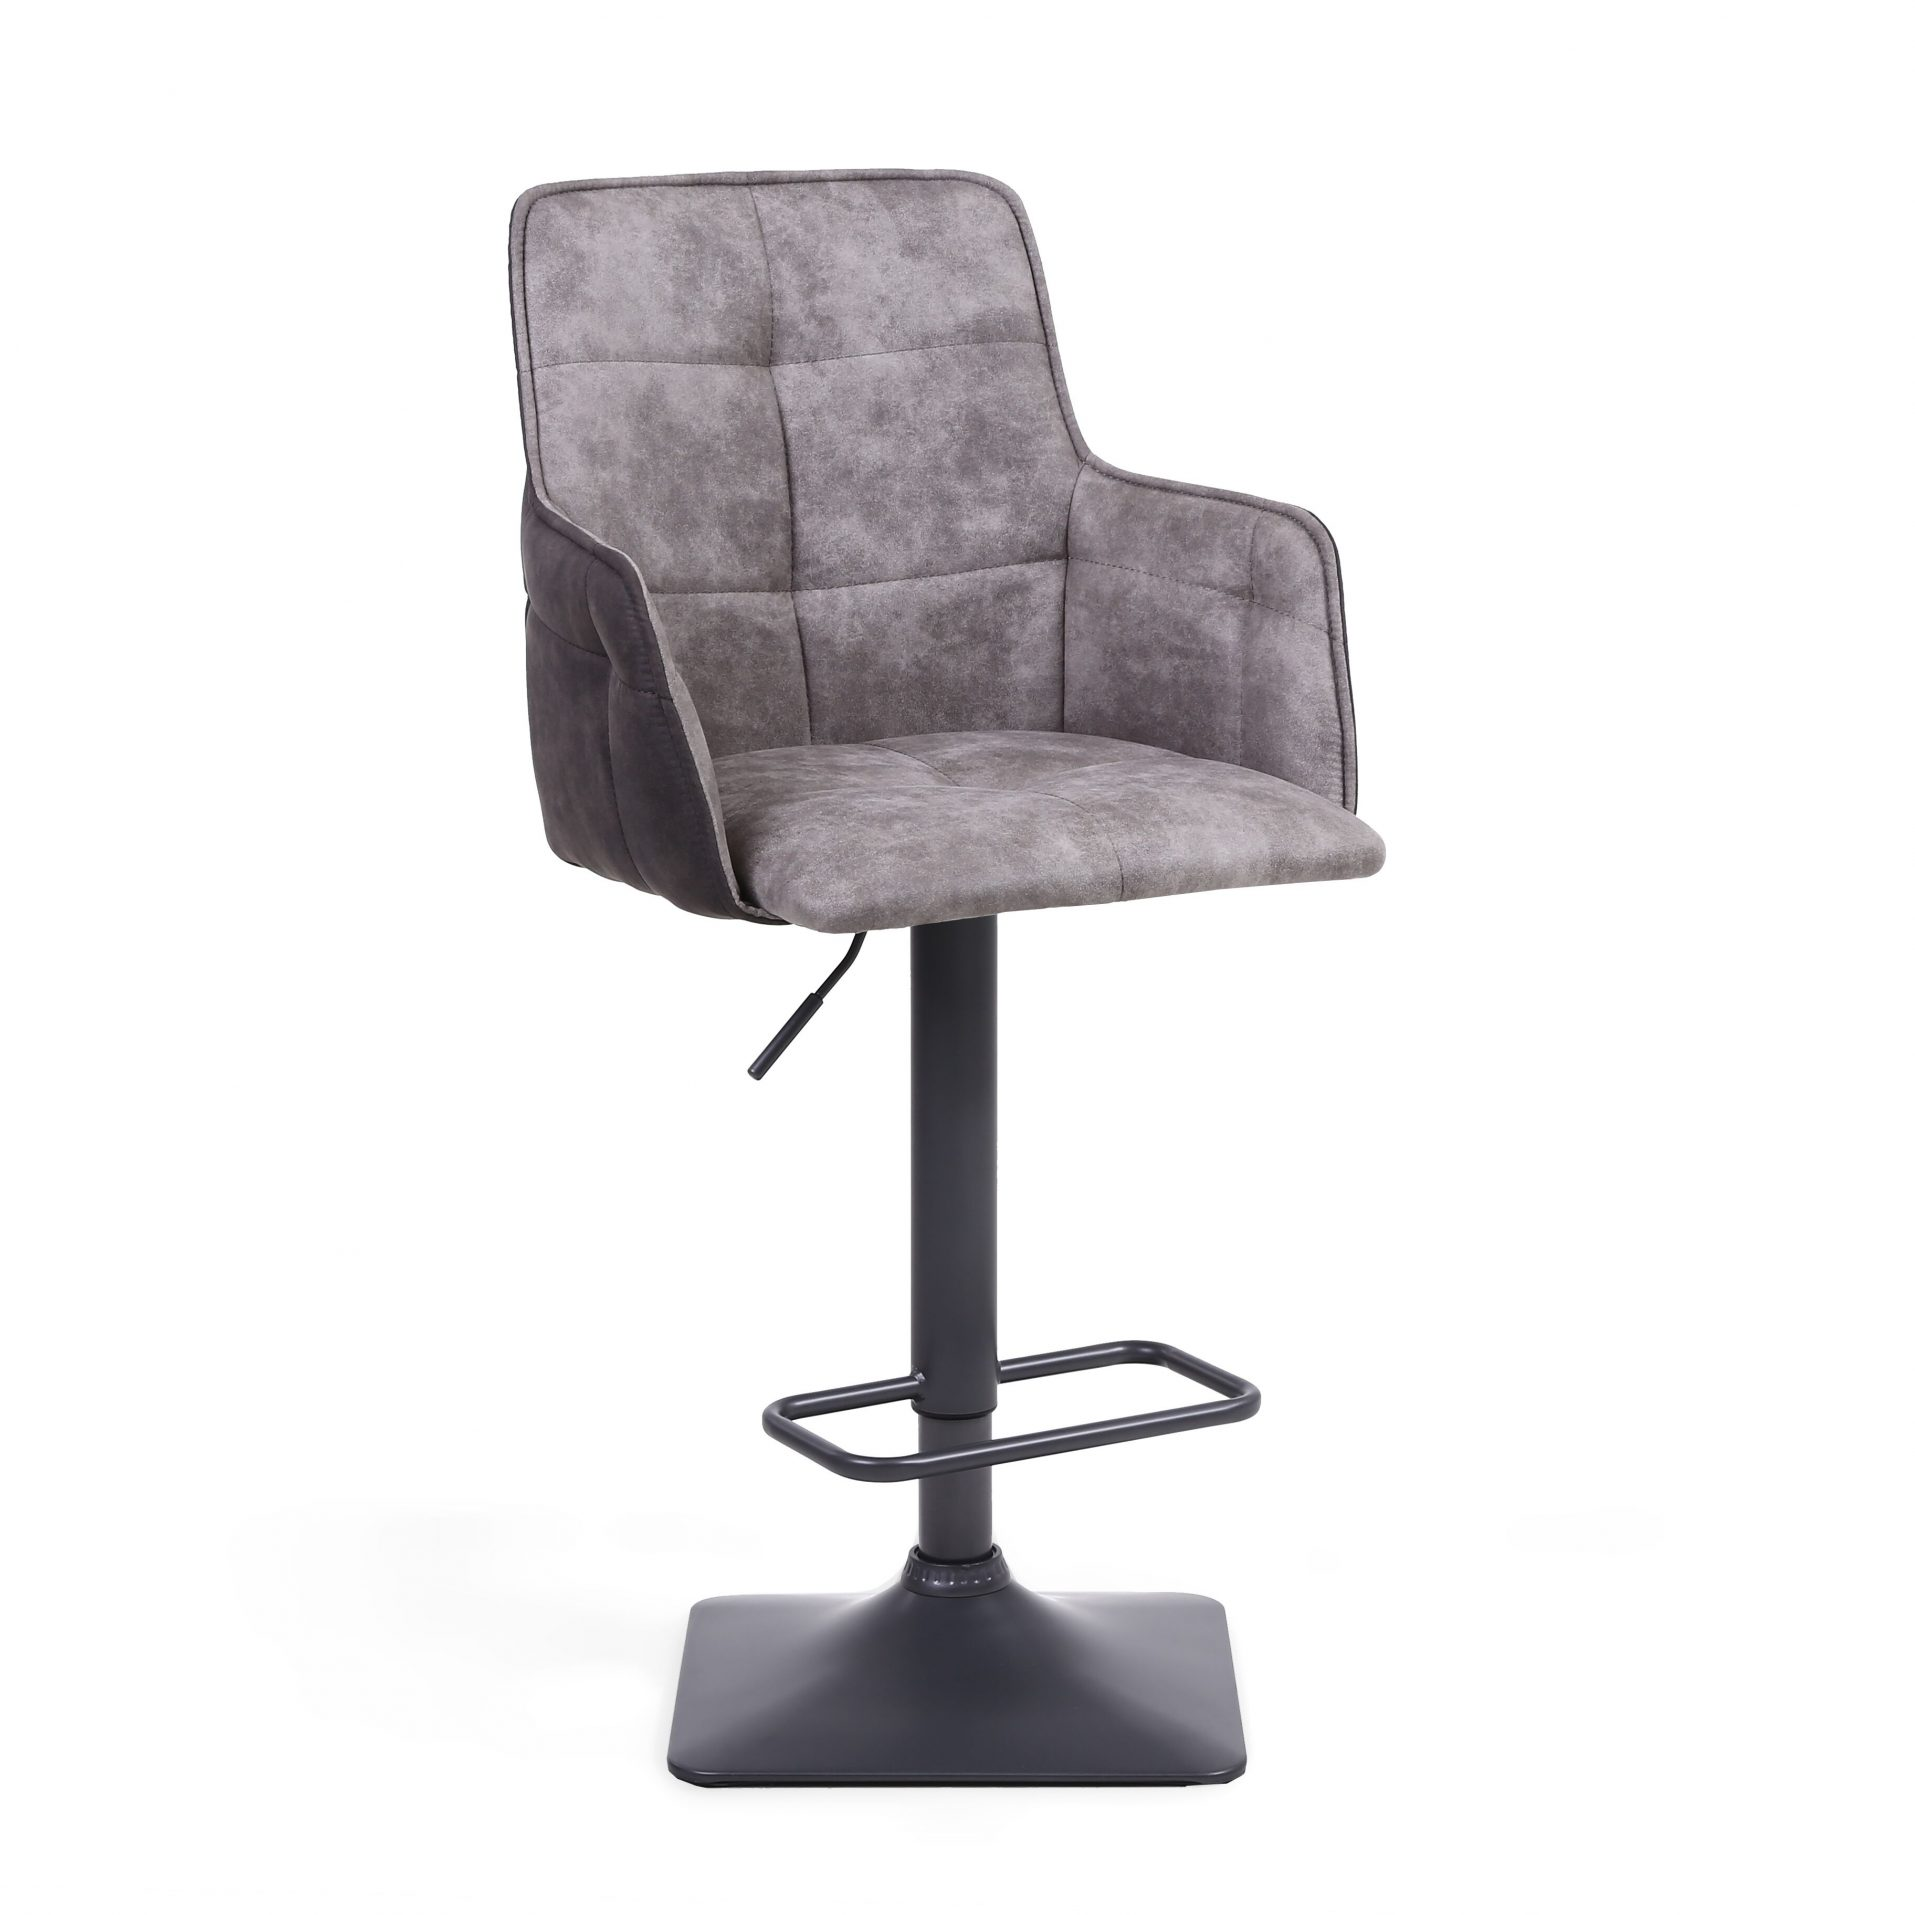 Admirable Orion Suede Effect Light Grey Bar Stool Dailytribune Chair Design For Home Dailytribuneorg